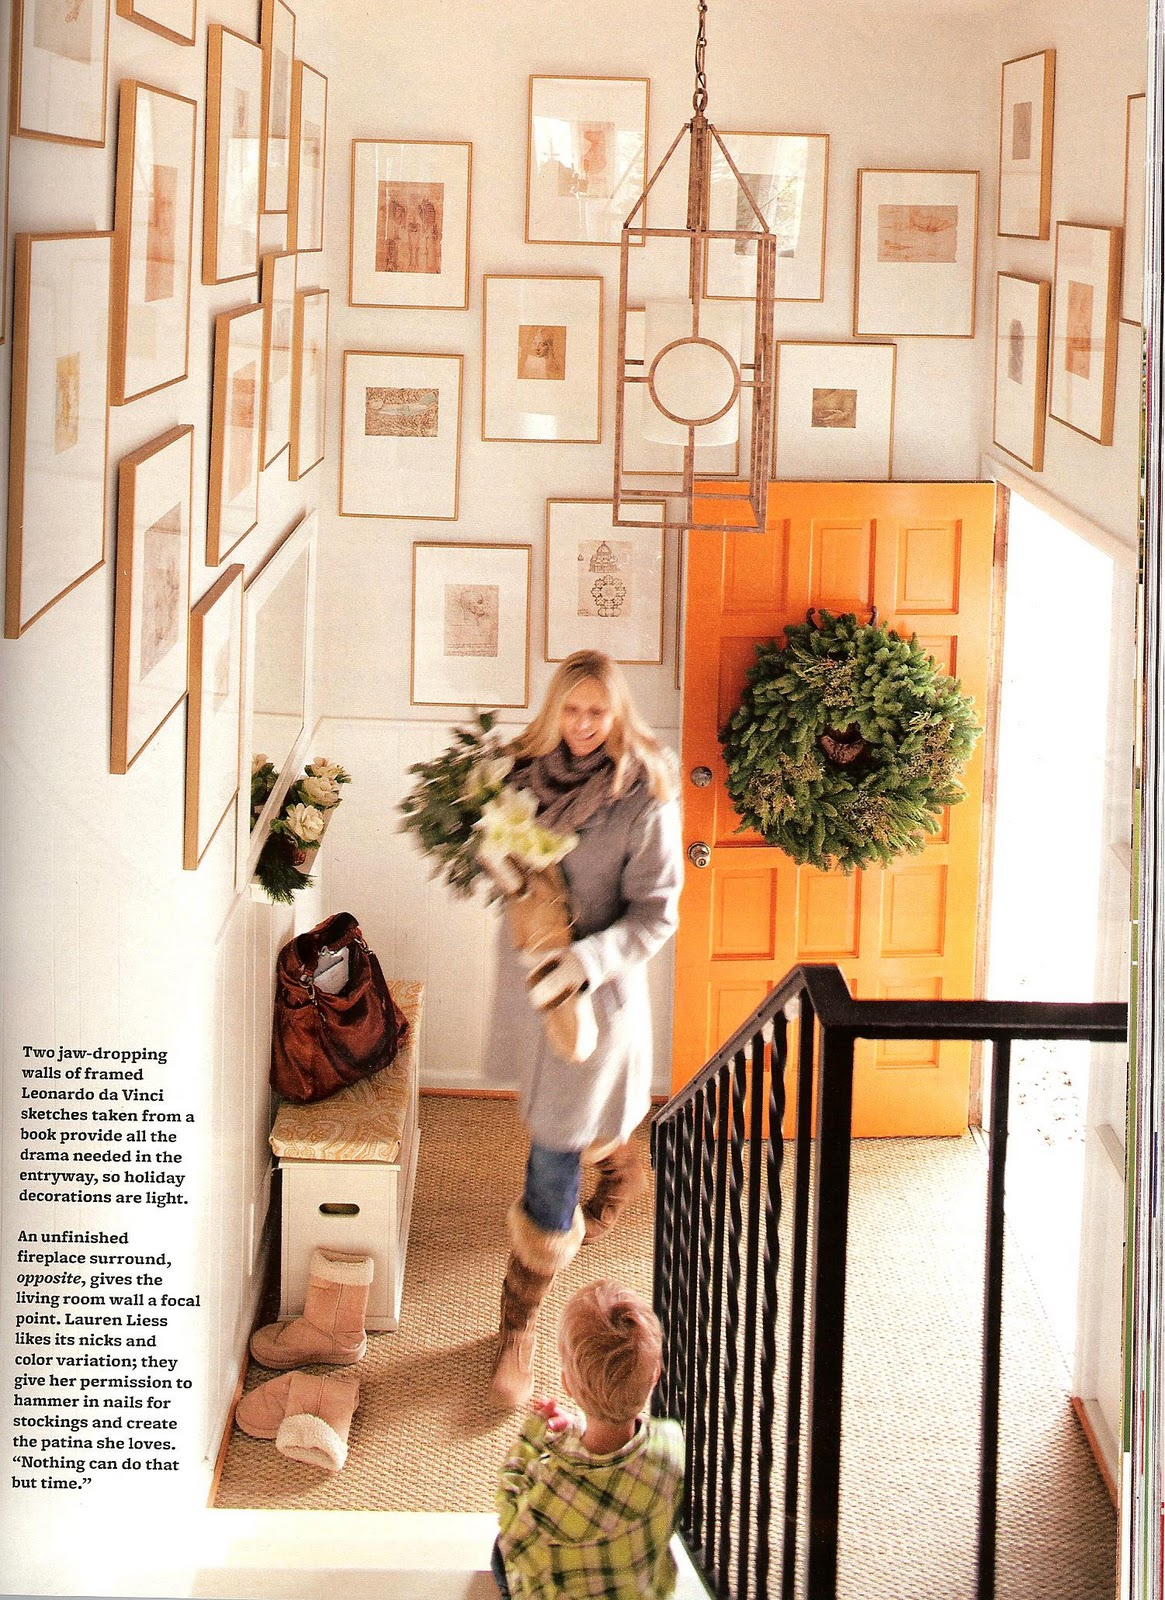 images from better homes and gardens scanned by me